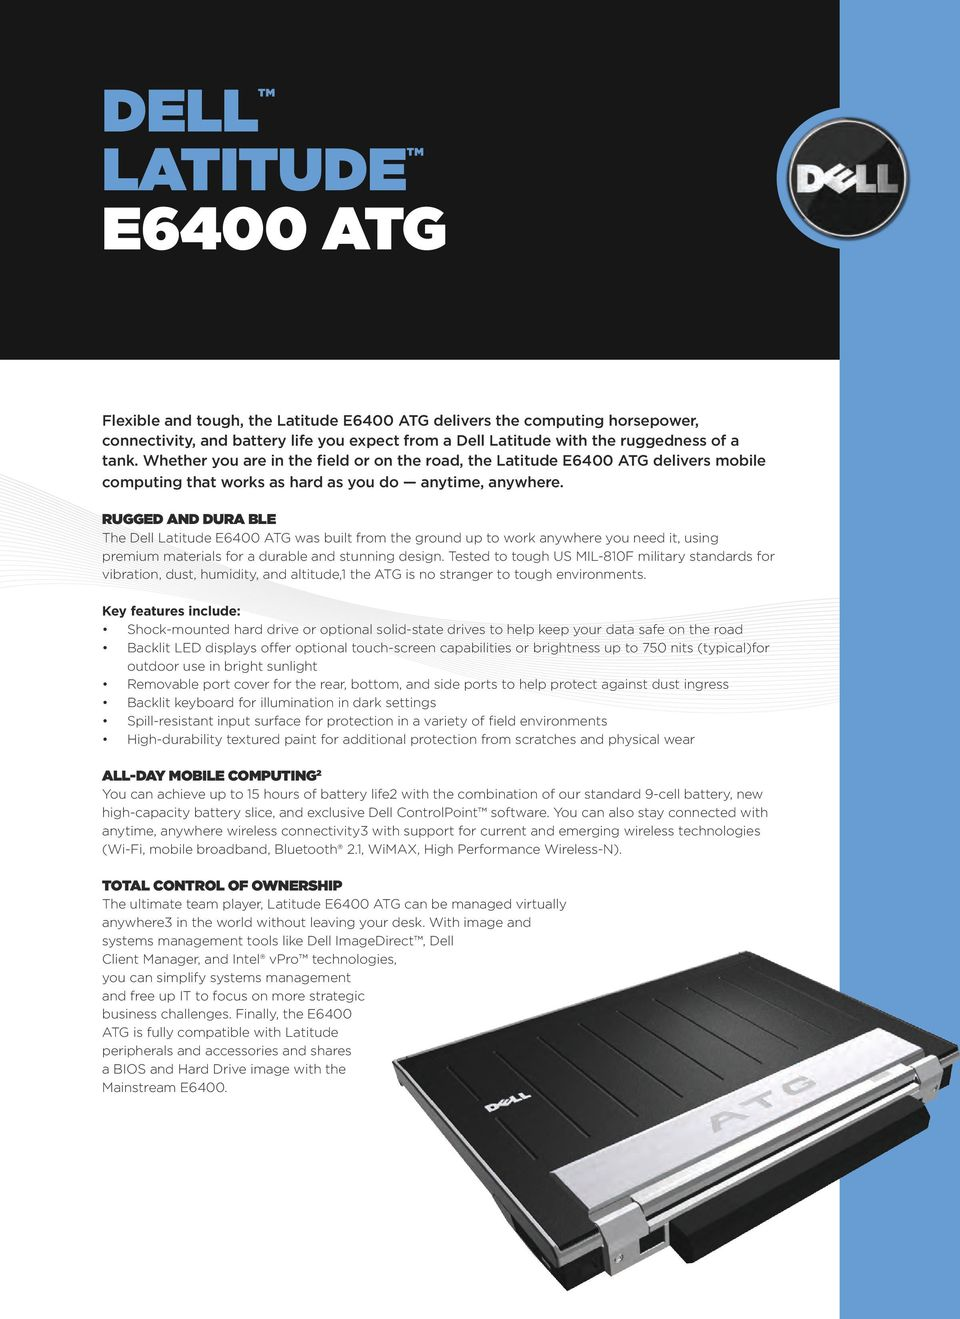 Rugged and Dura ble The Dell Latitude E6400 ATG was built from the ground up to work anywhere you need it, using premium materials for a durable and stunning design.